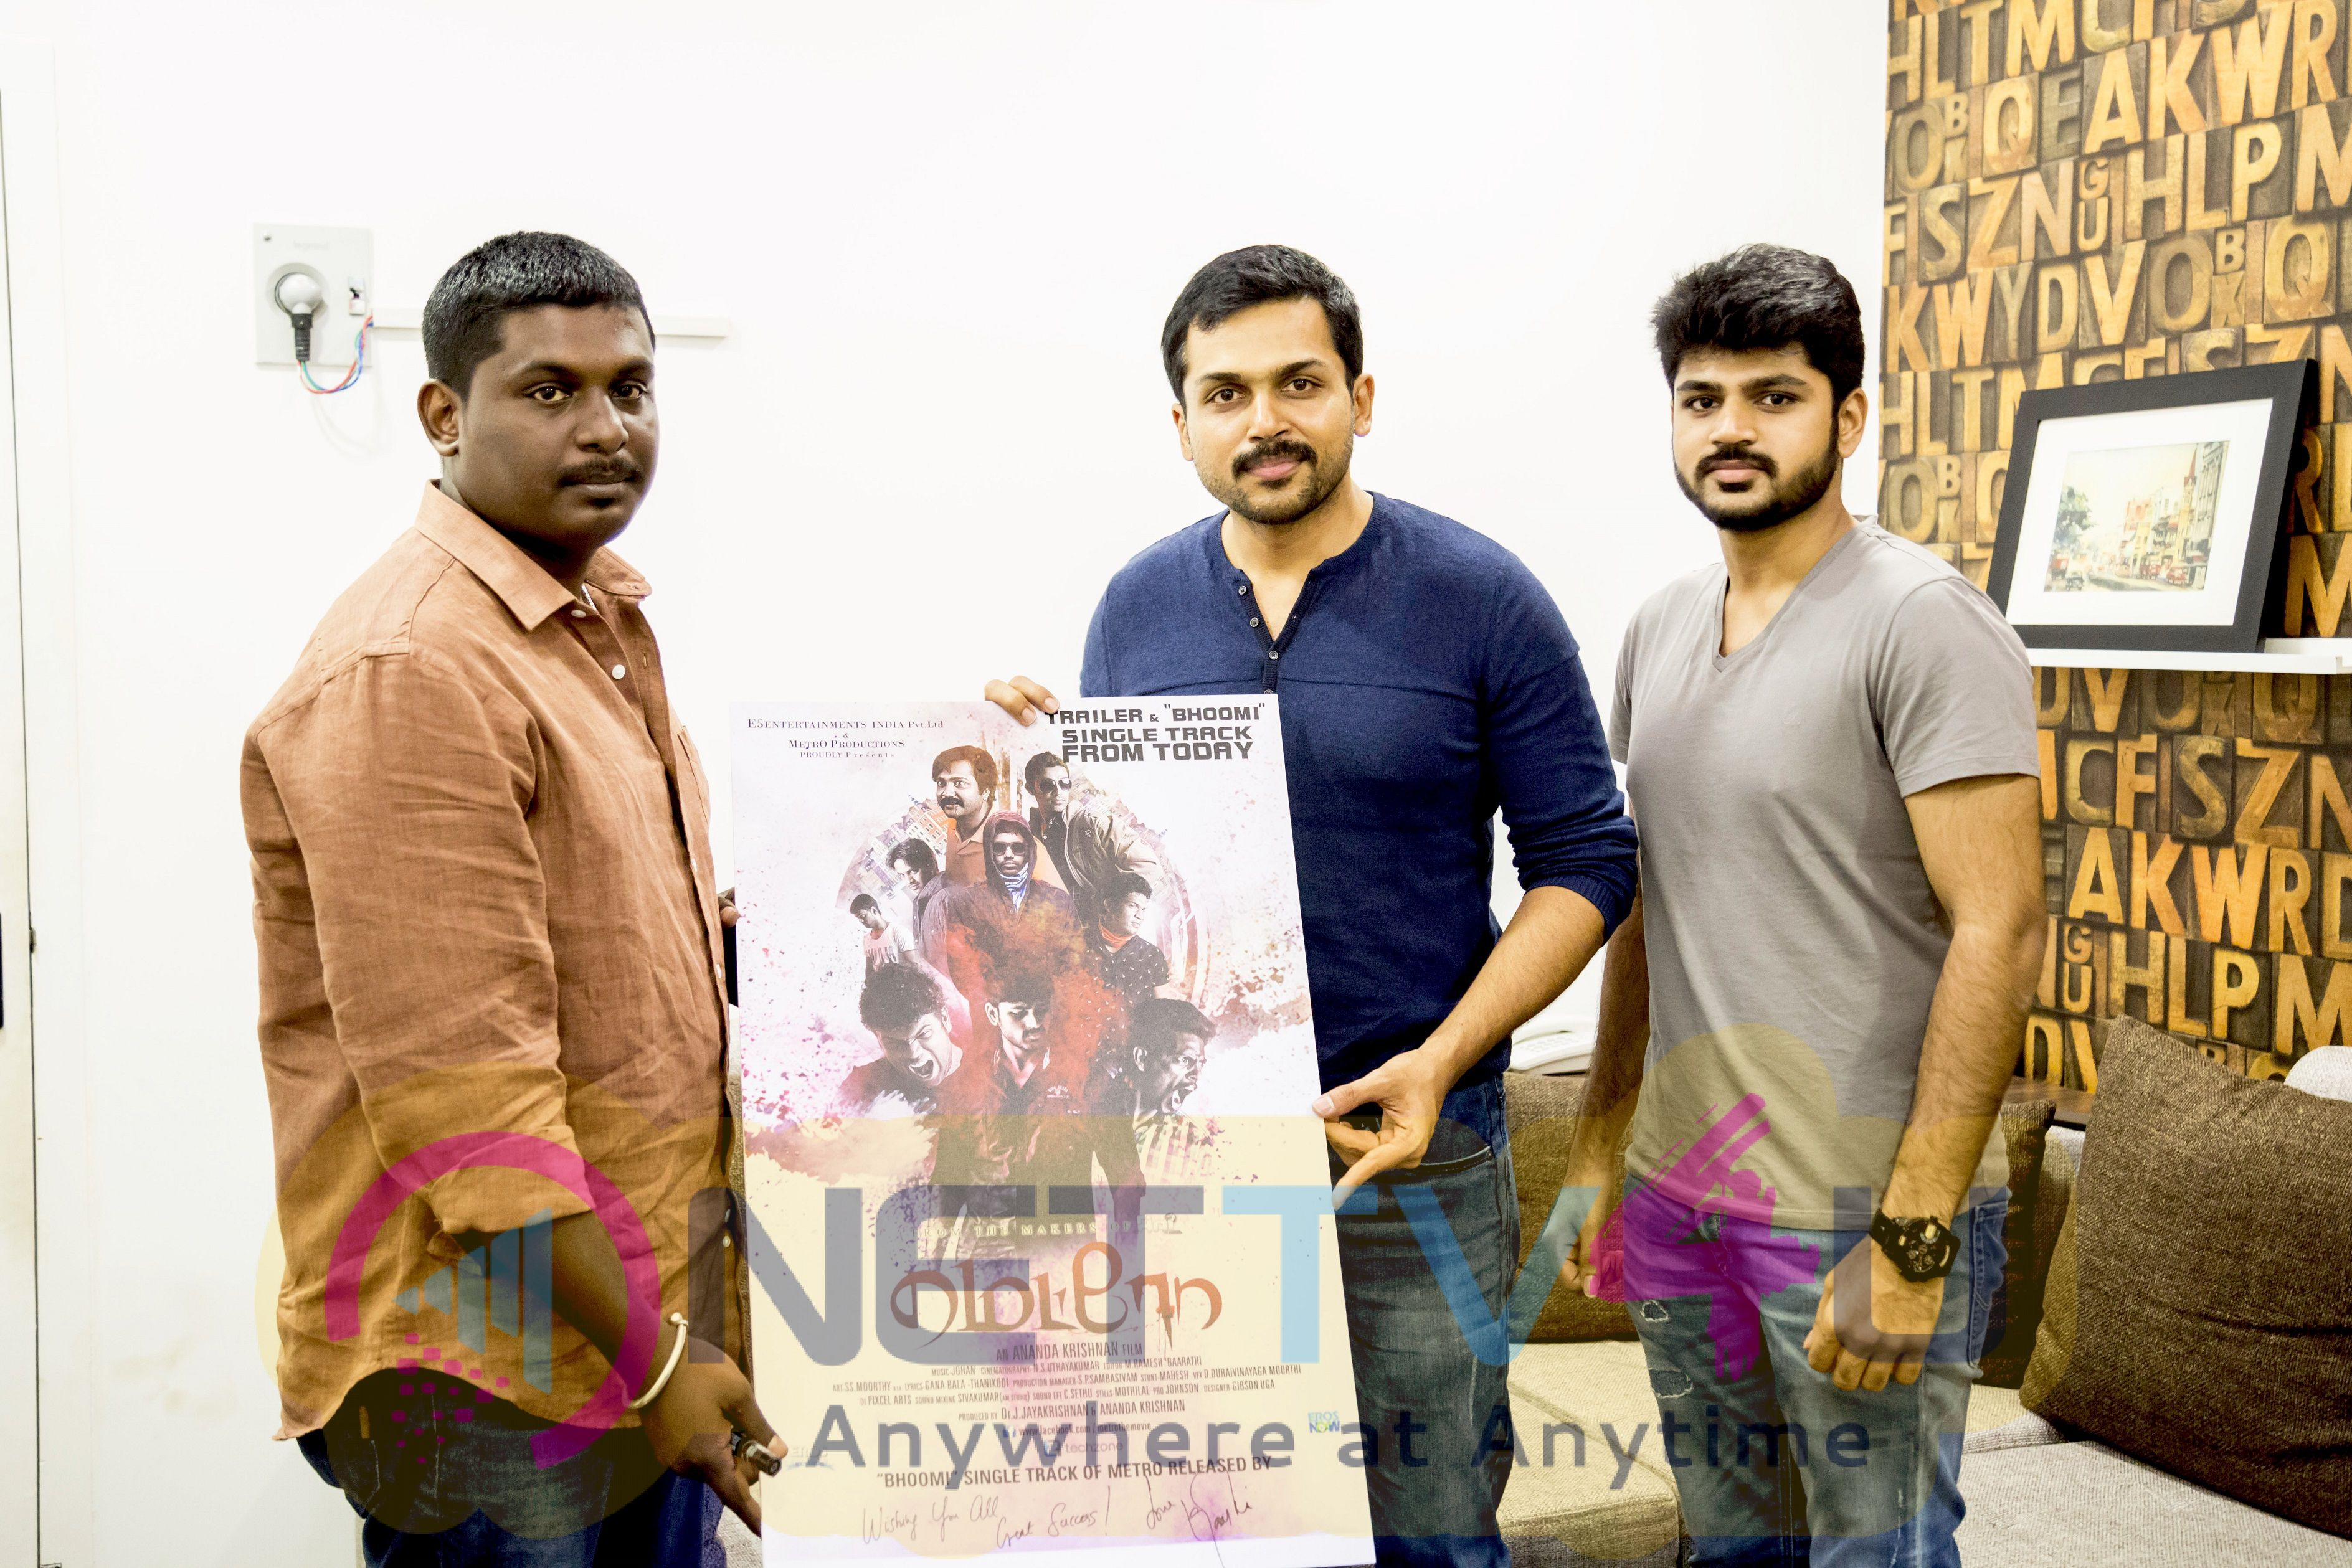 actor karthi launched lmetror movie  bhoomi  song sung by gana bala still images 1